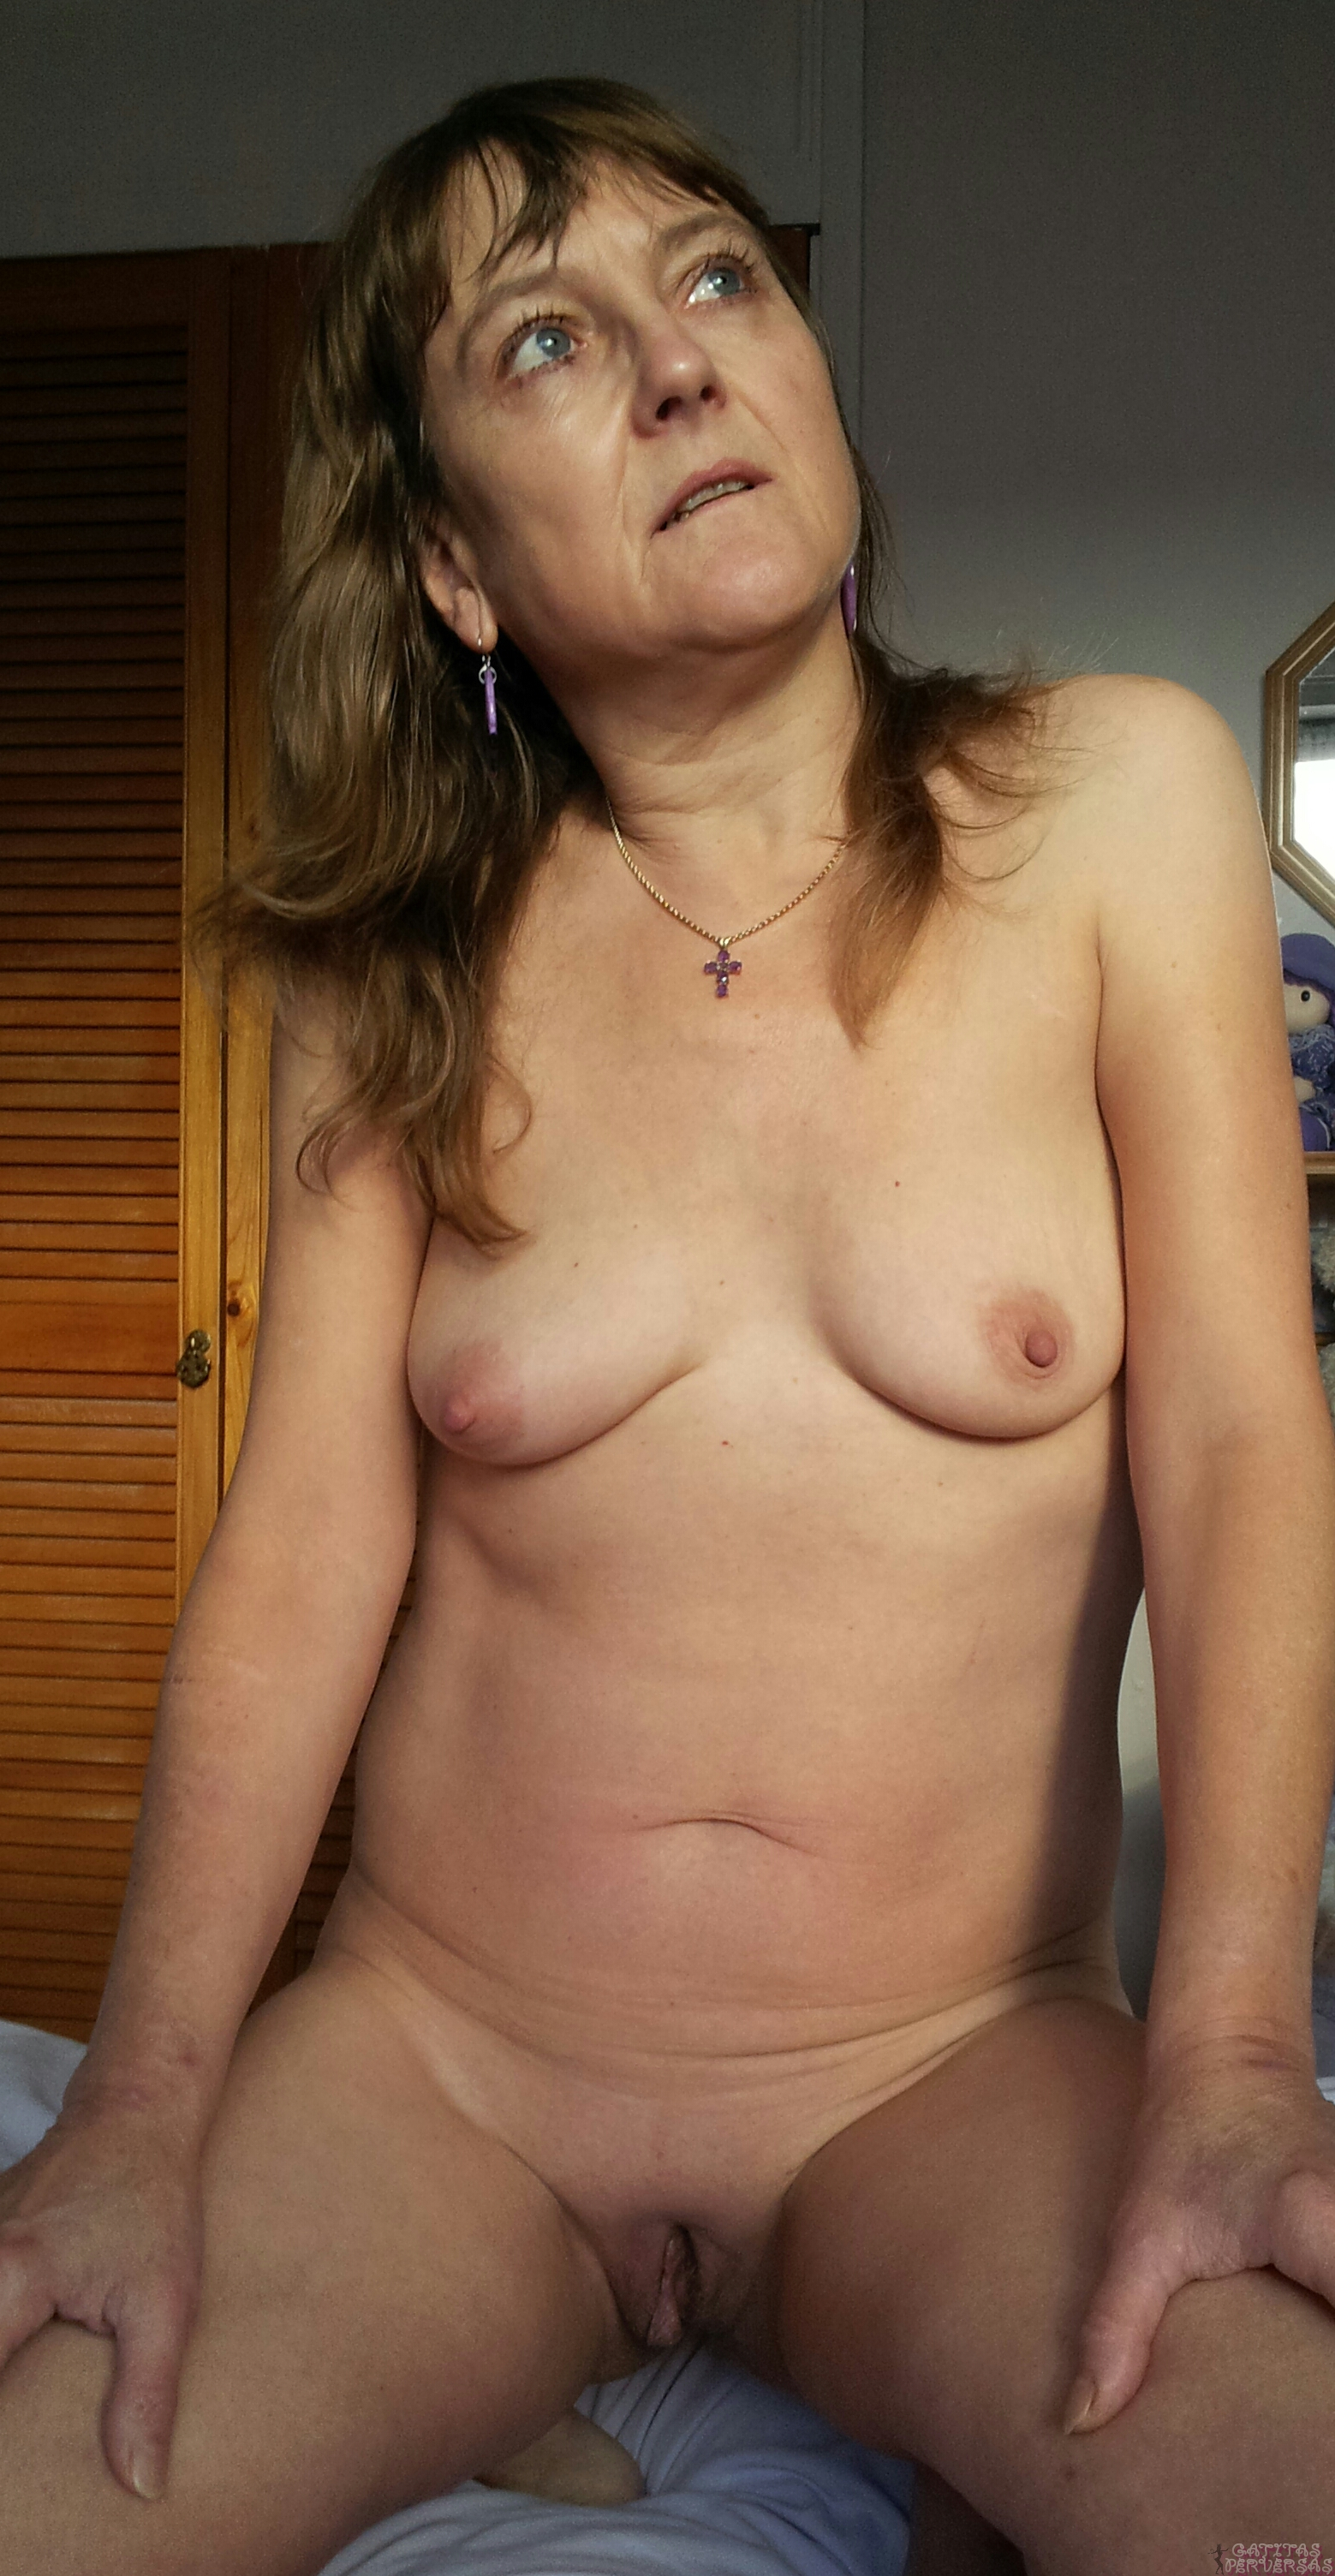 nude amateur mature female model